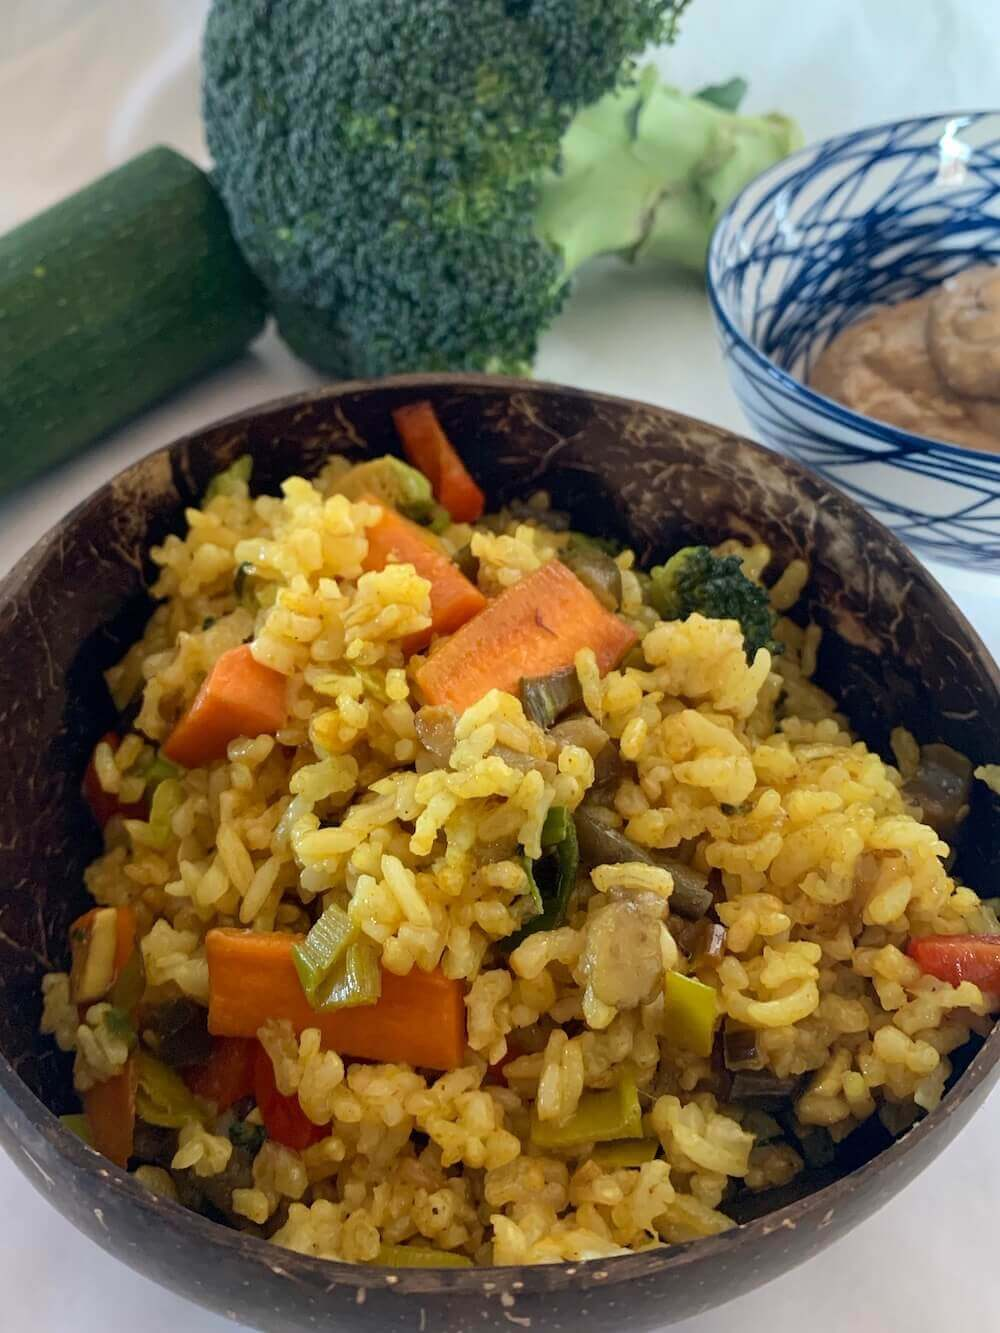 Vegetable rice in a bowl